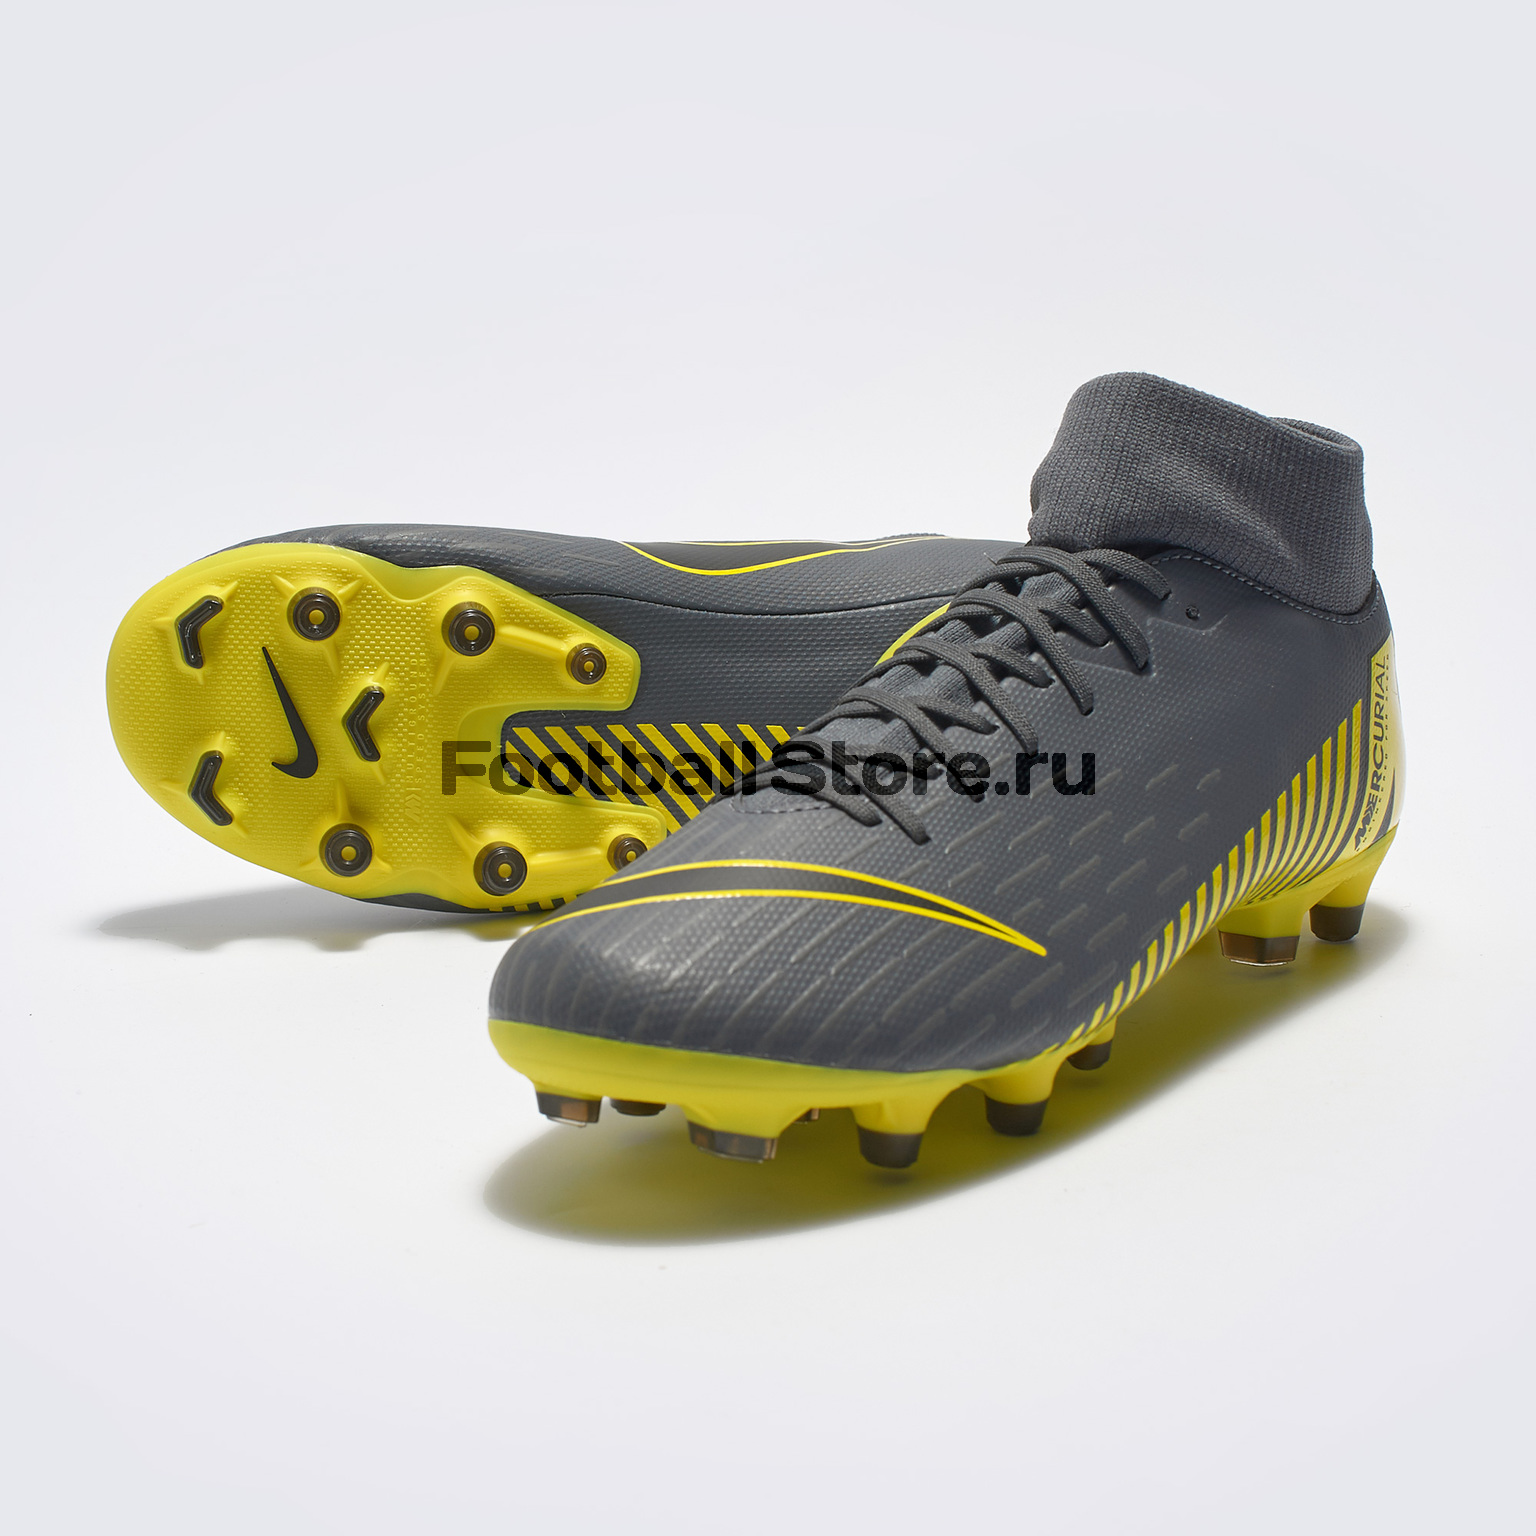 Бутсы Nike Superfly 6 Academy FG/MG AH7362-070 бутсы детские nike superfly academy gs cr7 fg mg aj3111 600